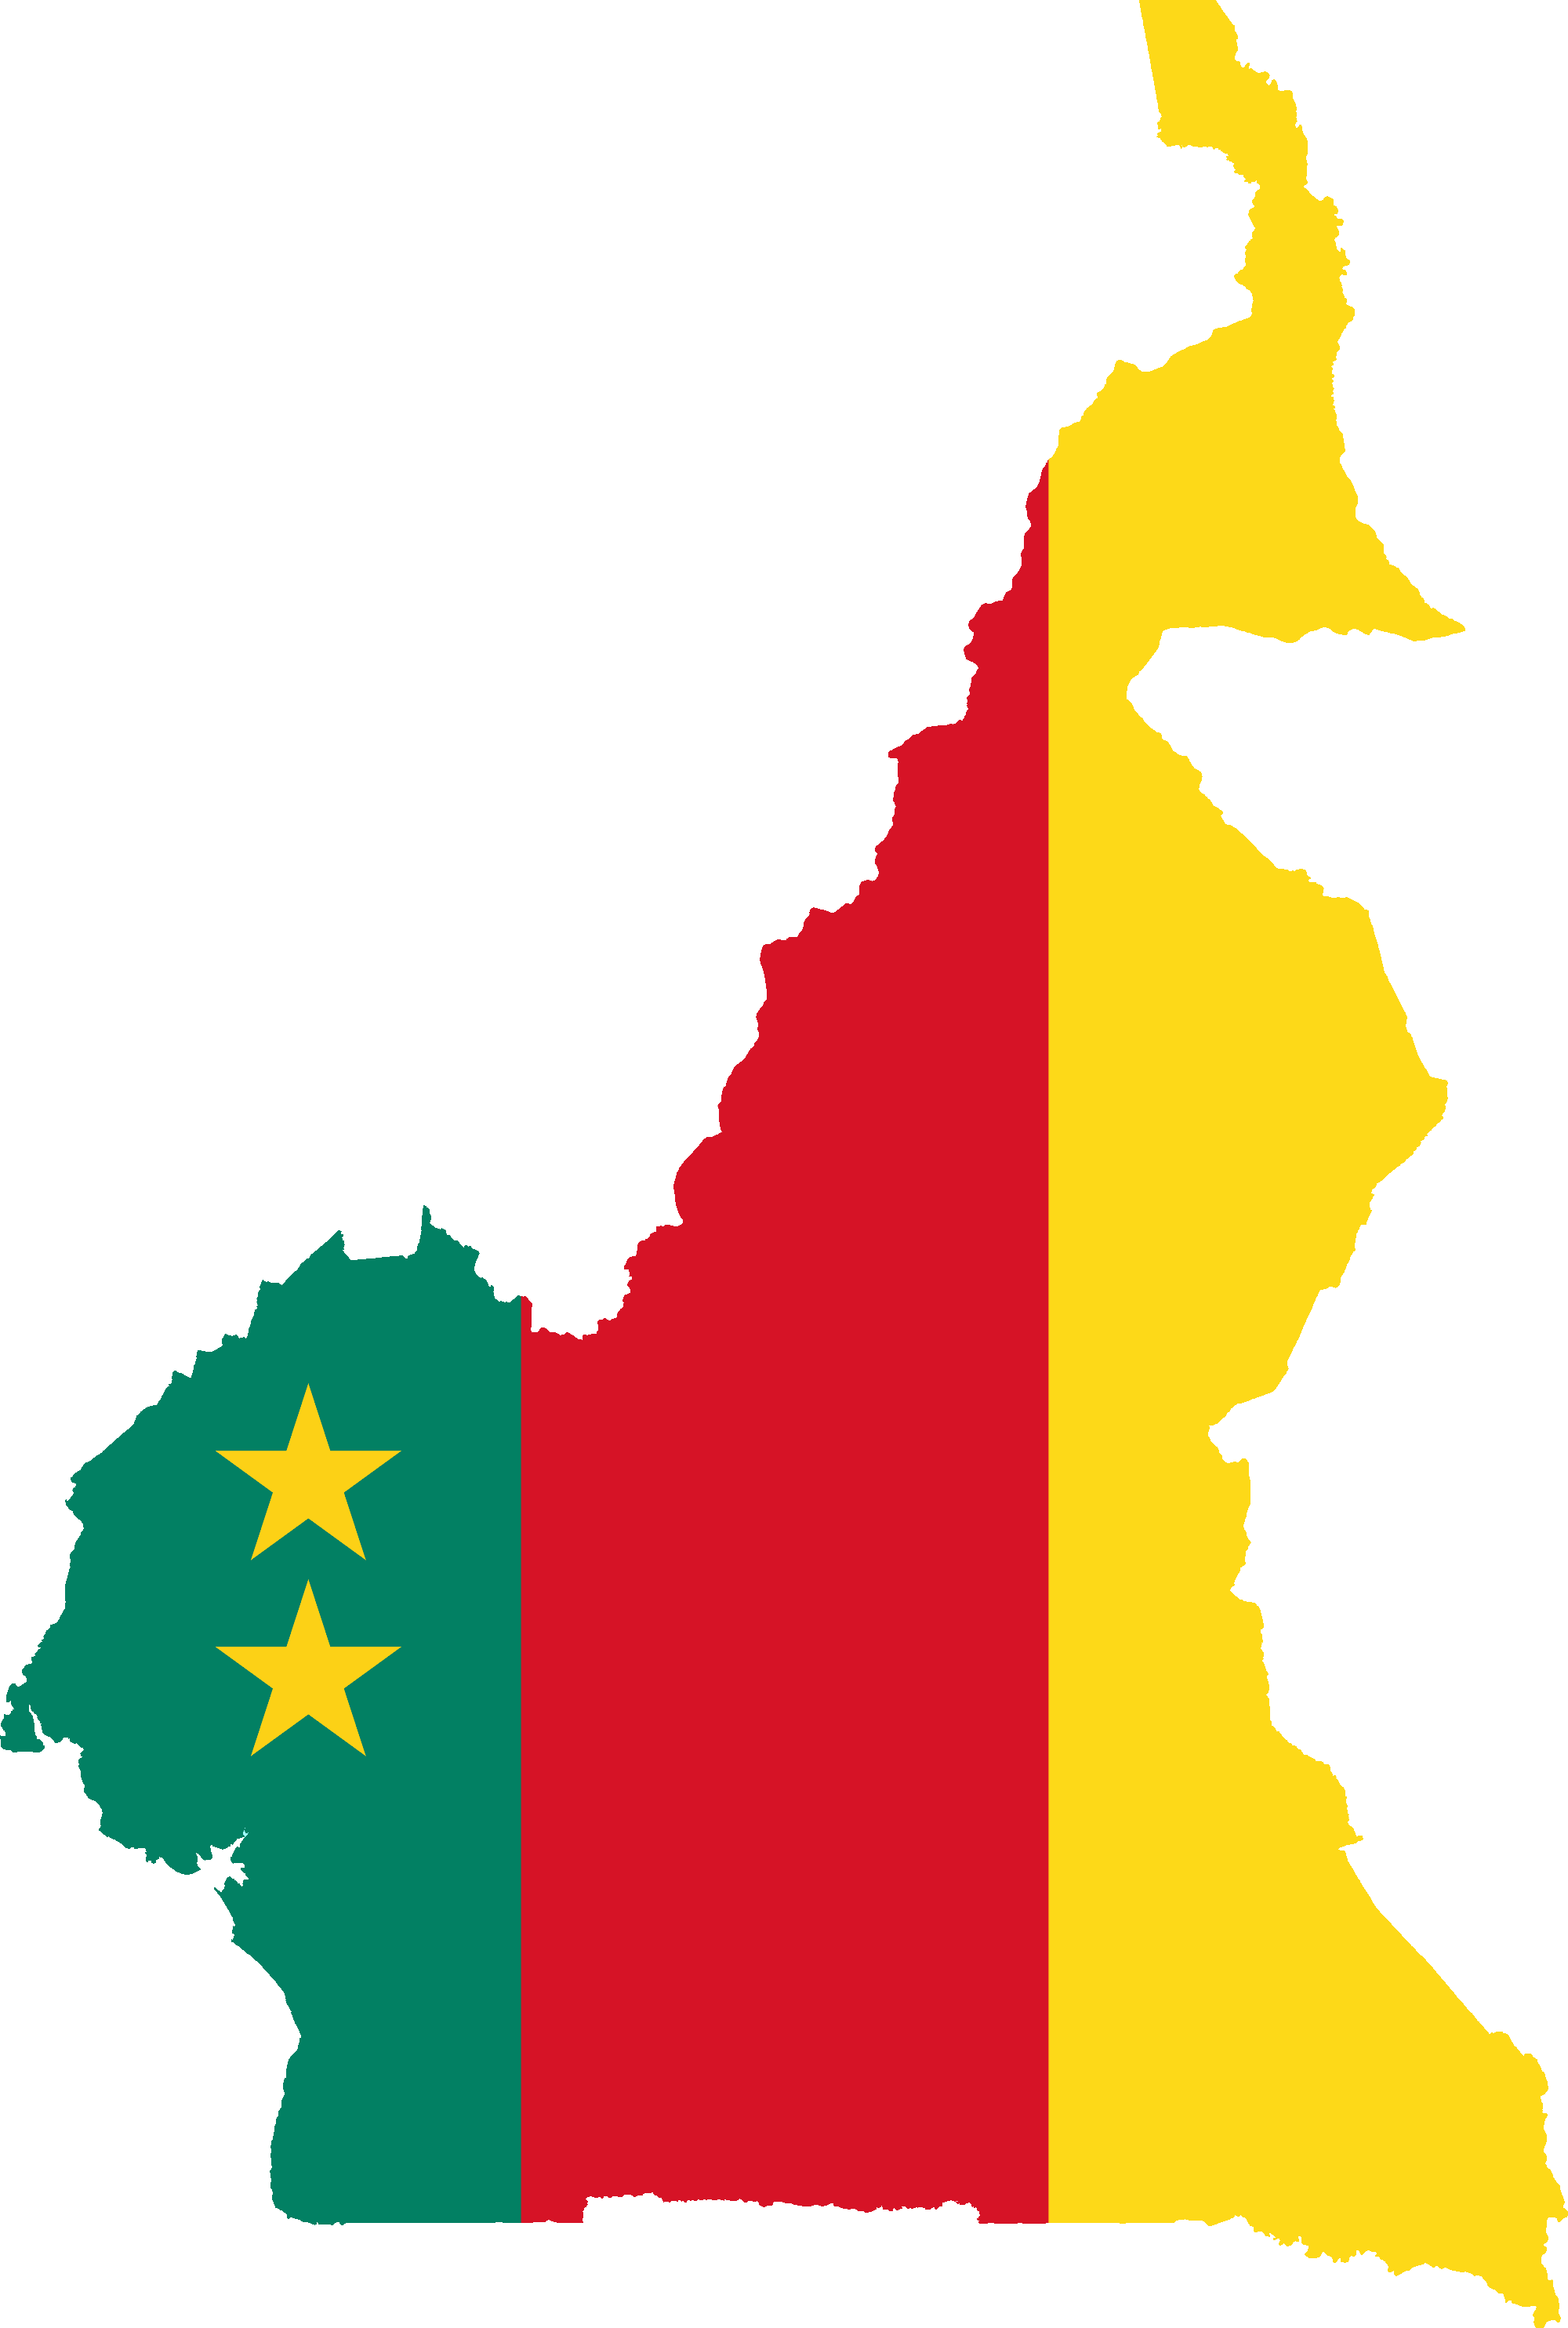 File:Flag Map Of Cameroon (1961-1975).png - Cameroon PNG